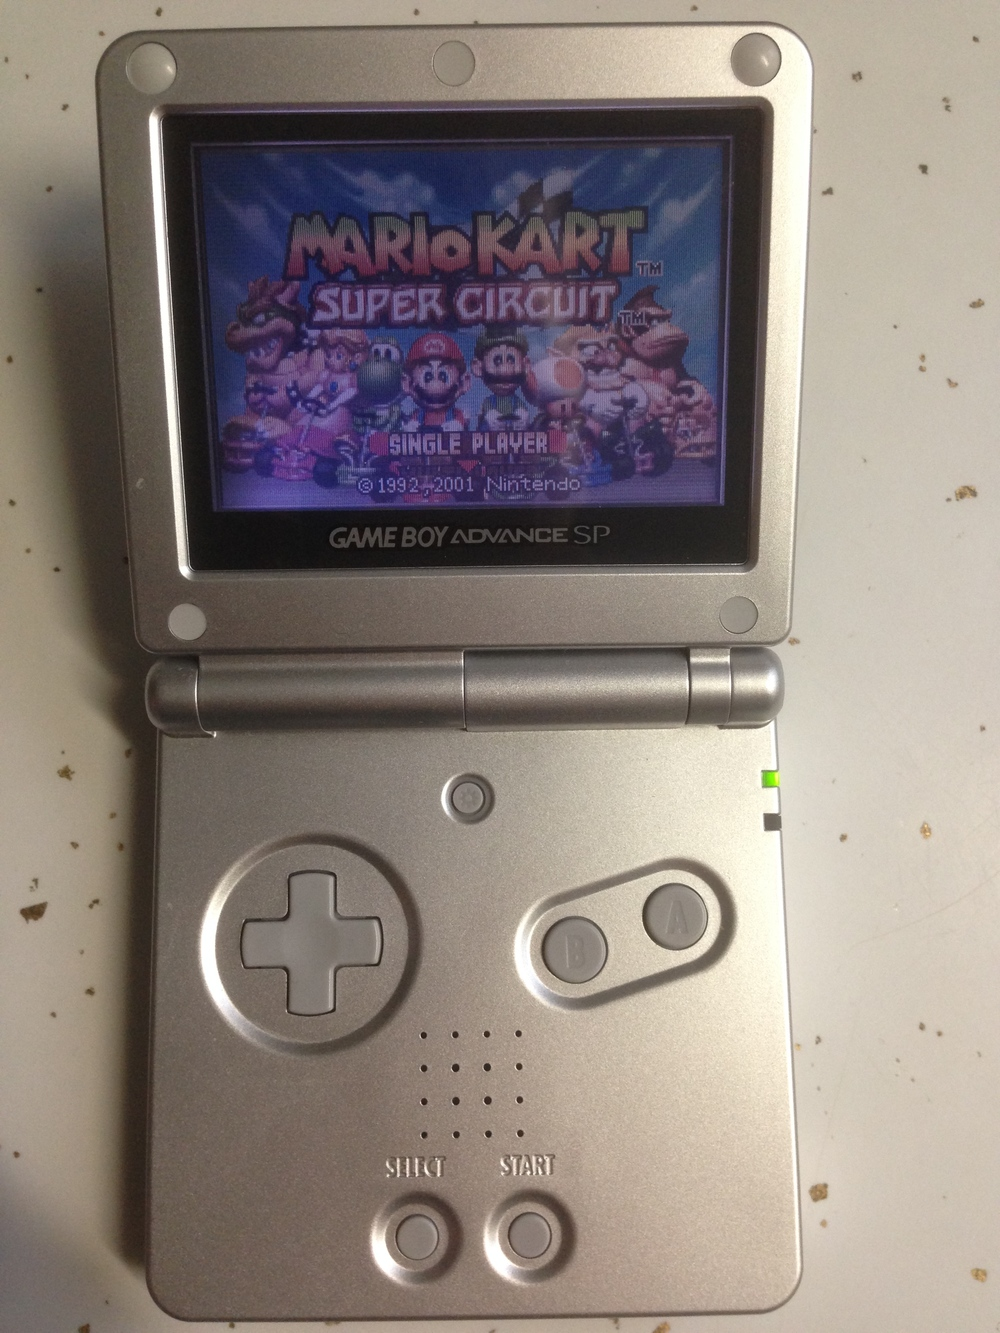 Mario Kart May 3 Mario Kart Super Circuit Gba The